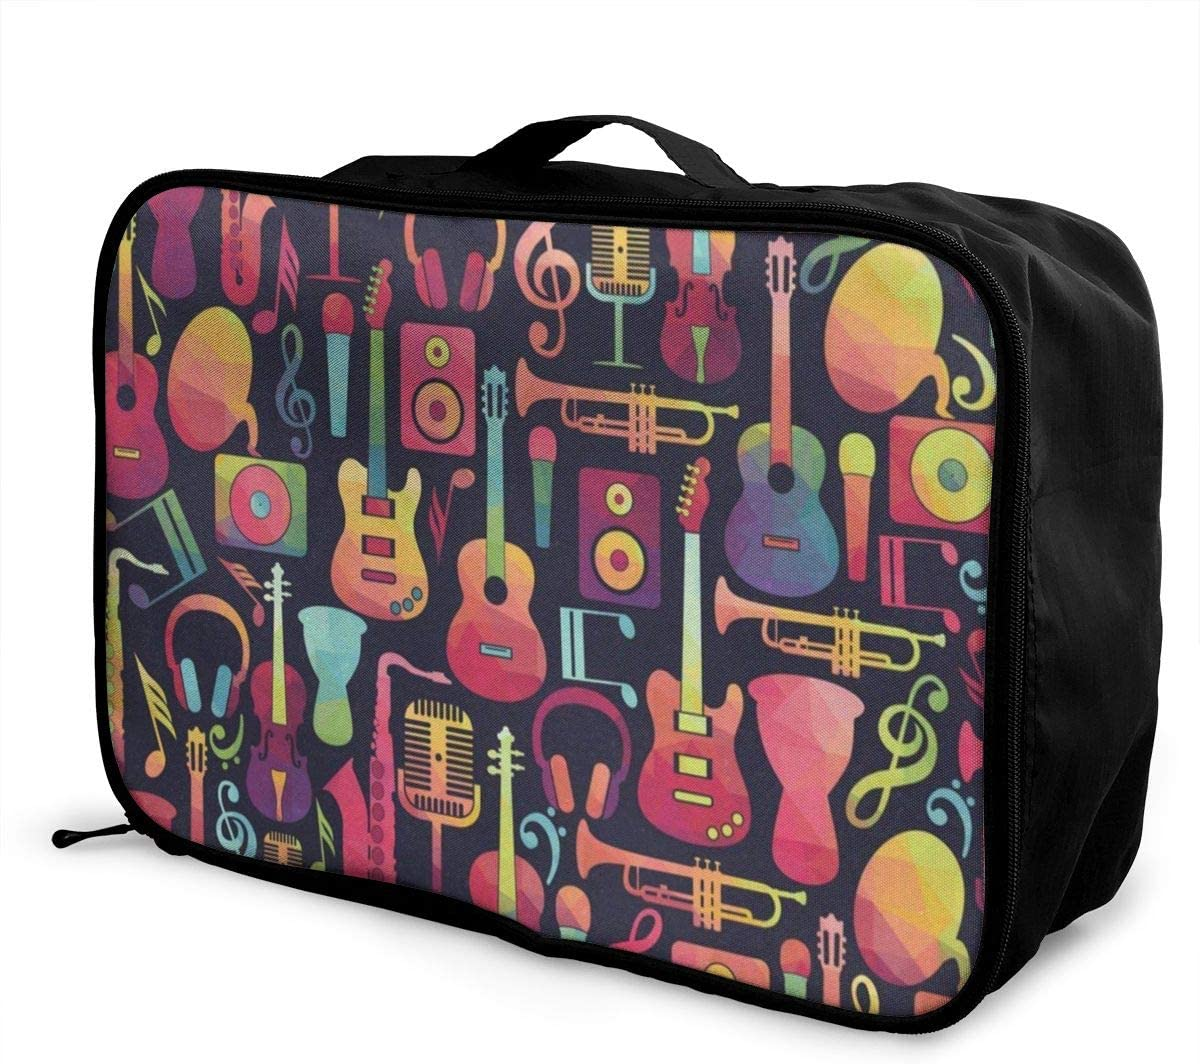 Travel Bags Music Item Portable Duffel Vintage Trolley Handle Luggage Bag